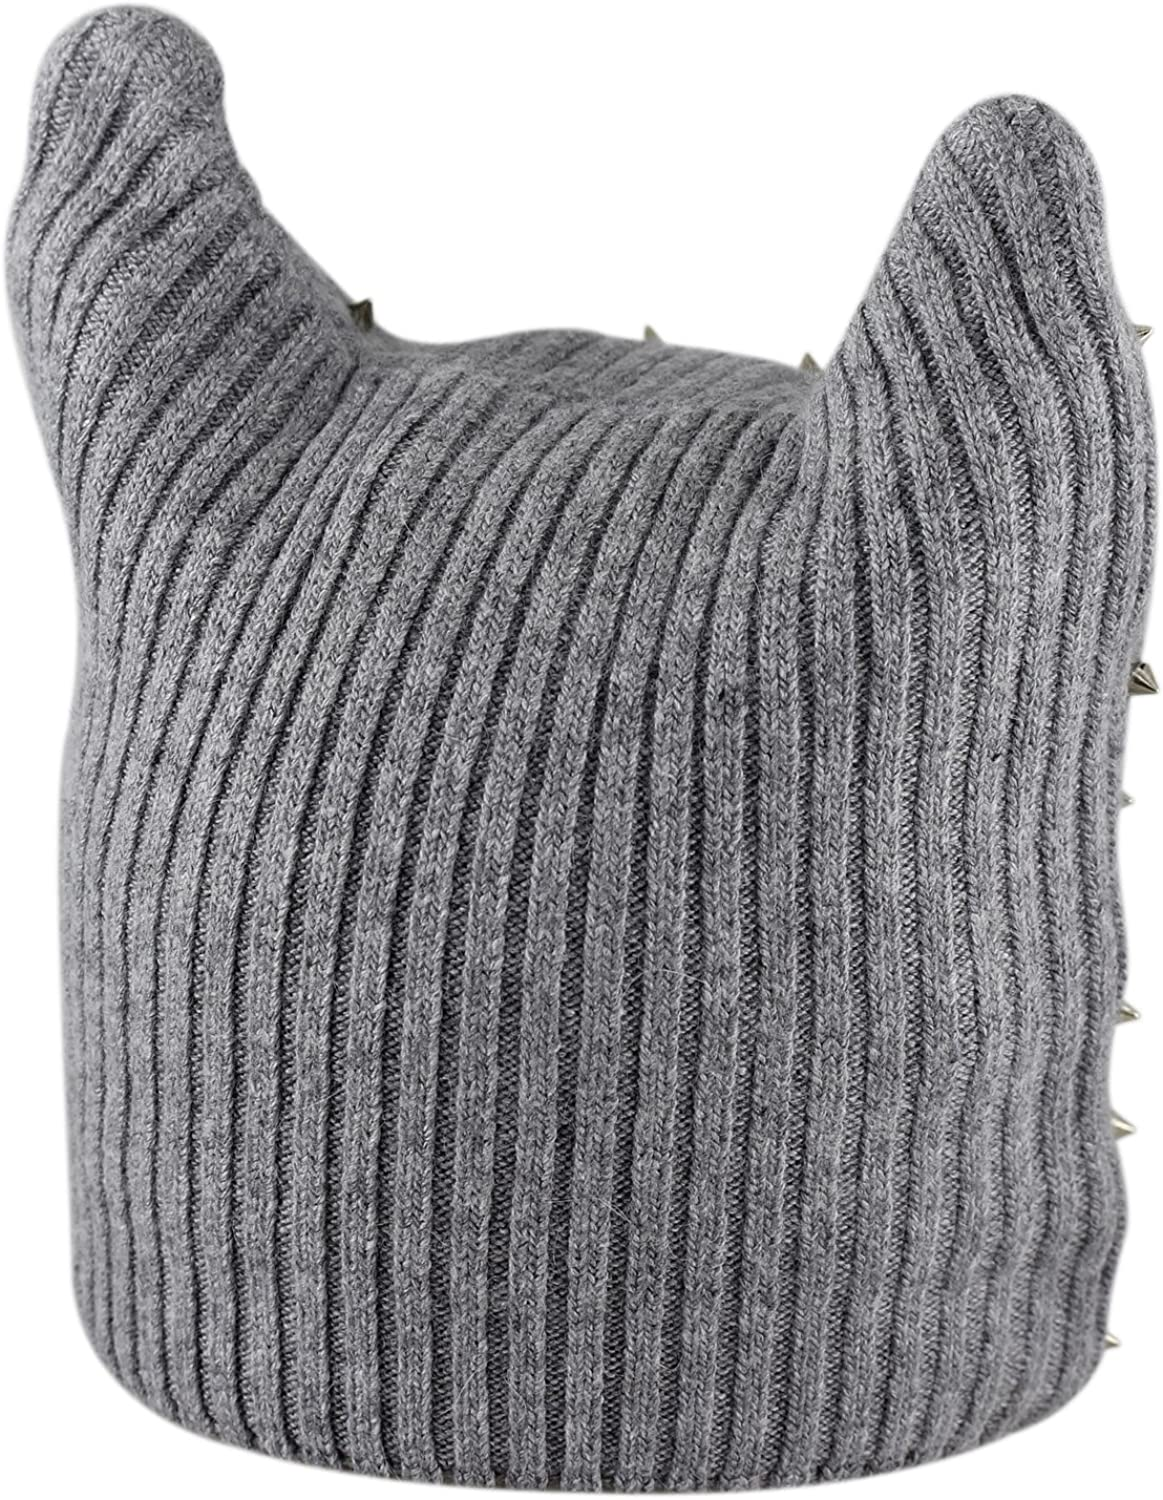 LA-EL COUTURE Girls Wool/&Angora with Beads Warm Beanie